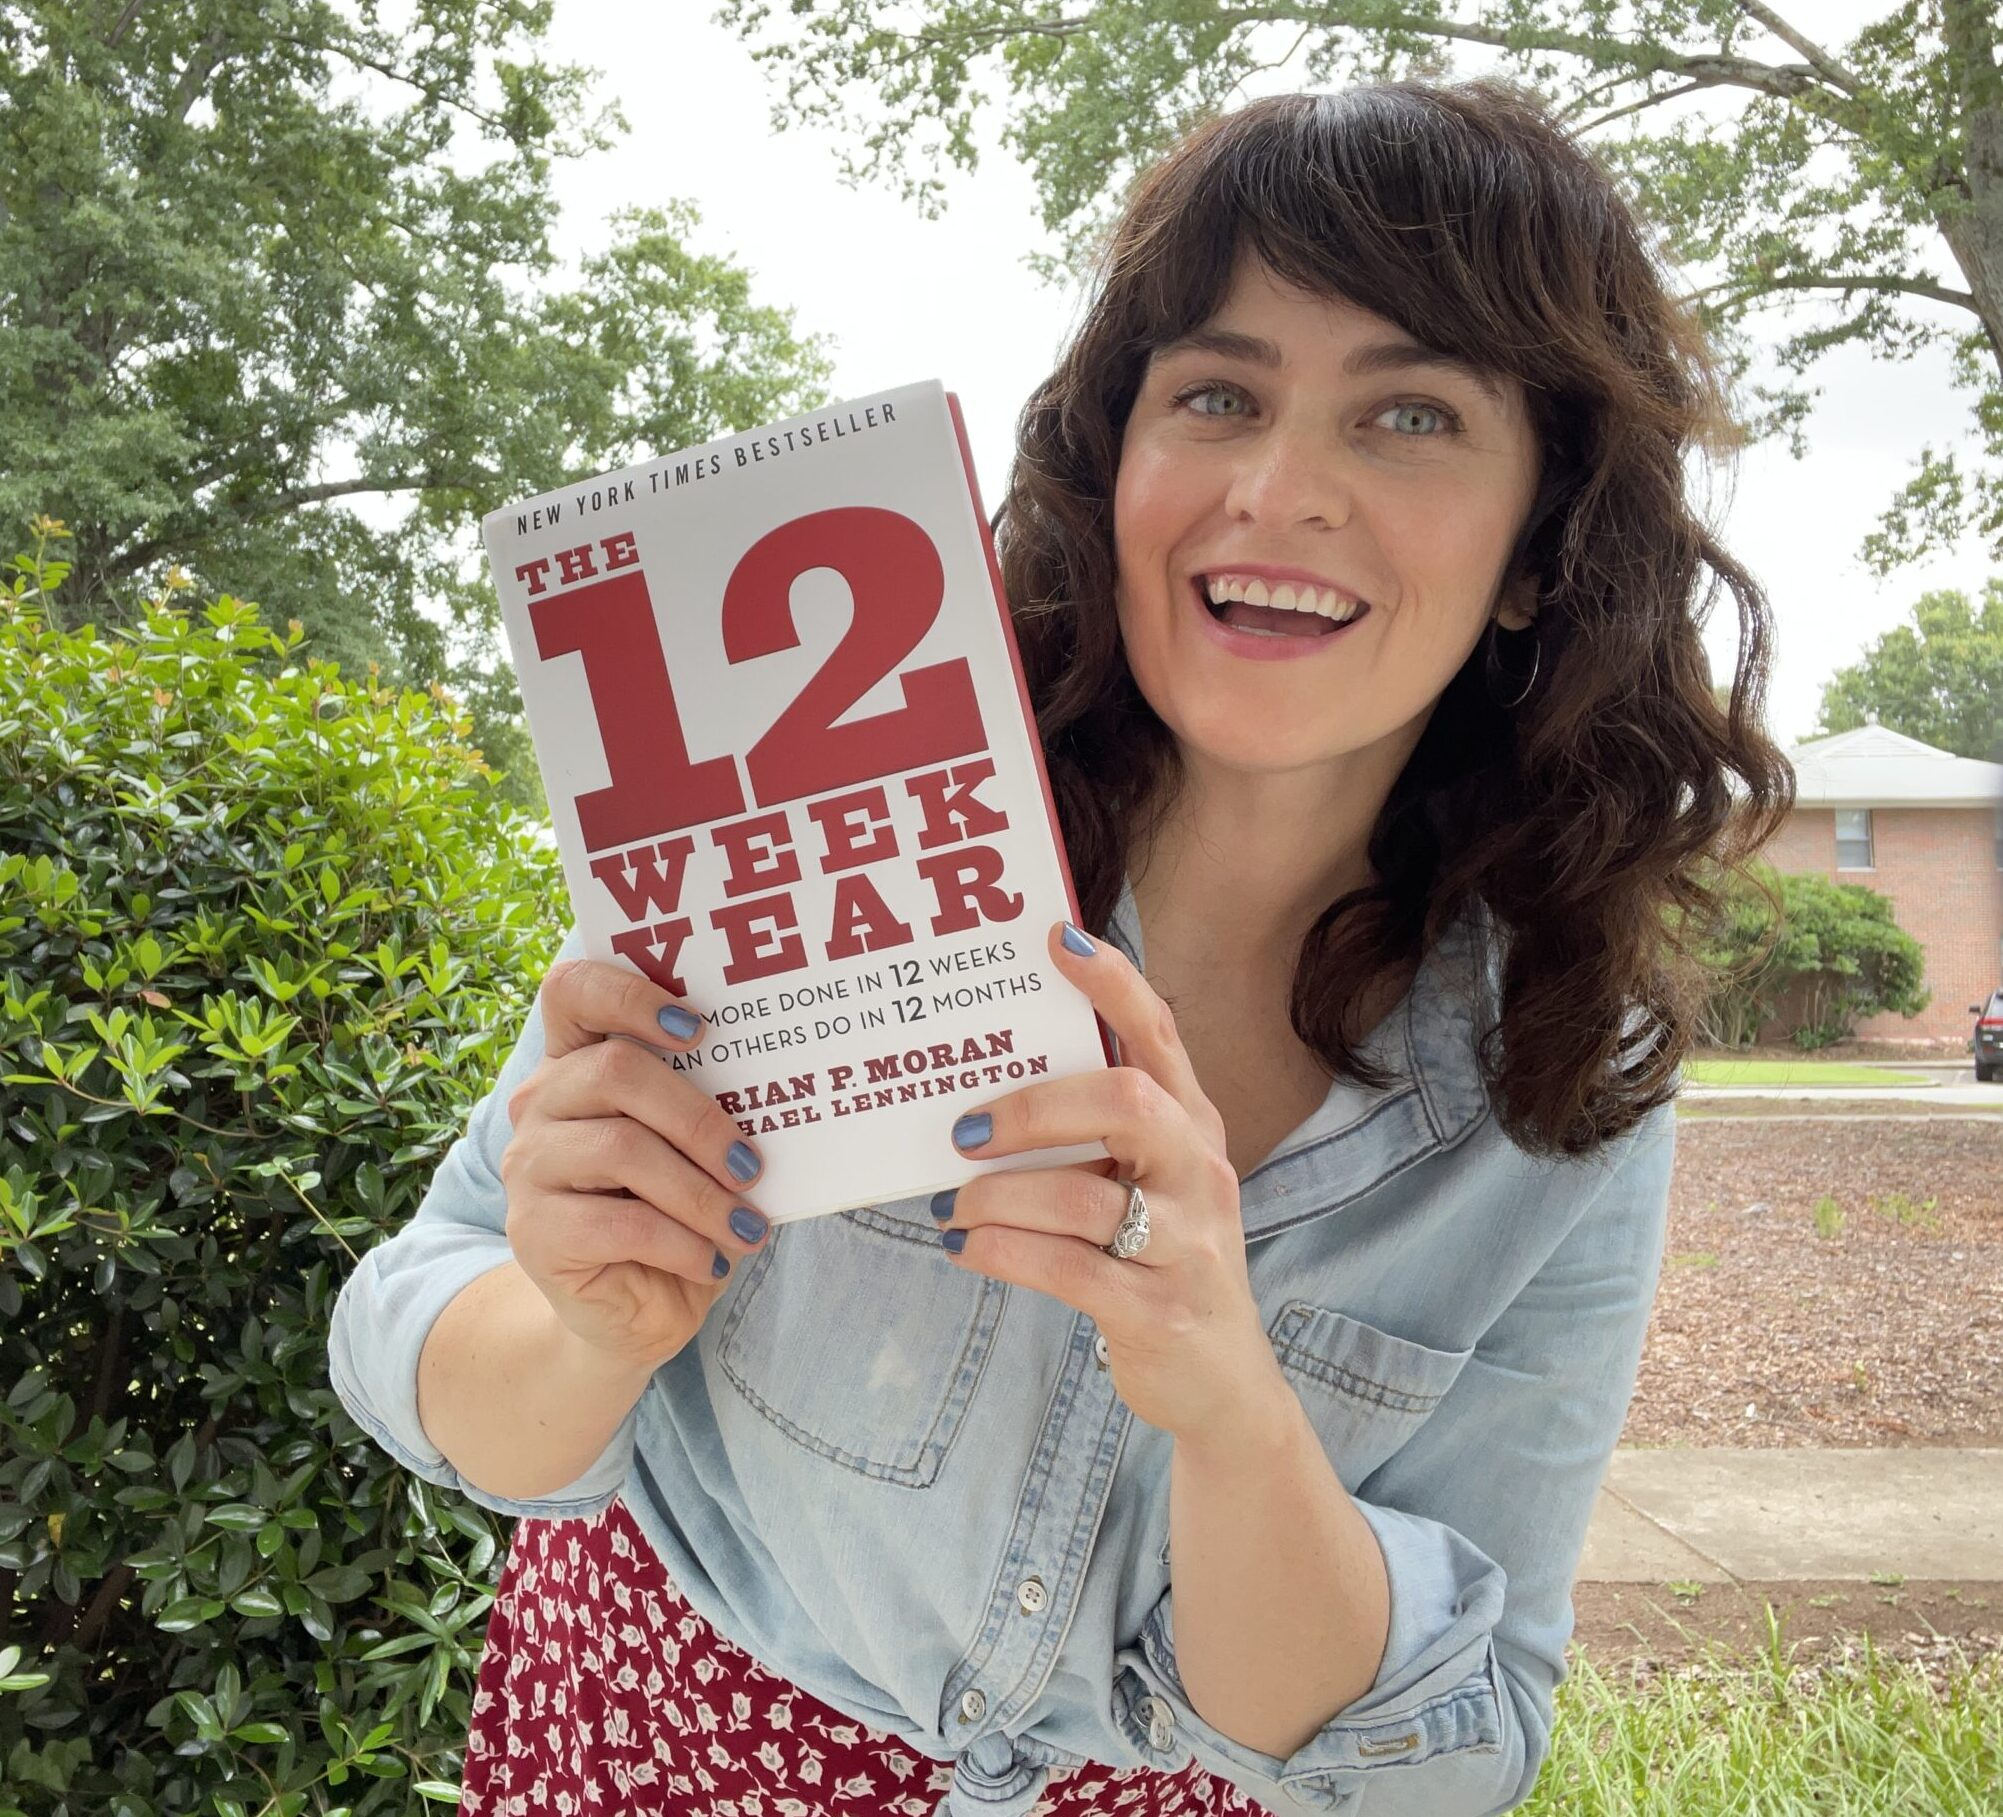 carrie rollwagen holds the 12 week year book